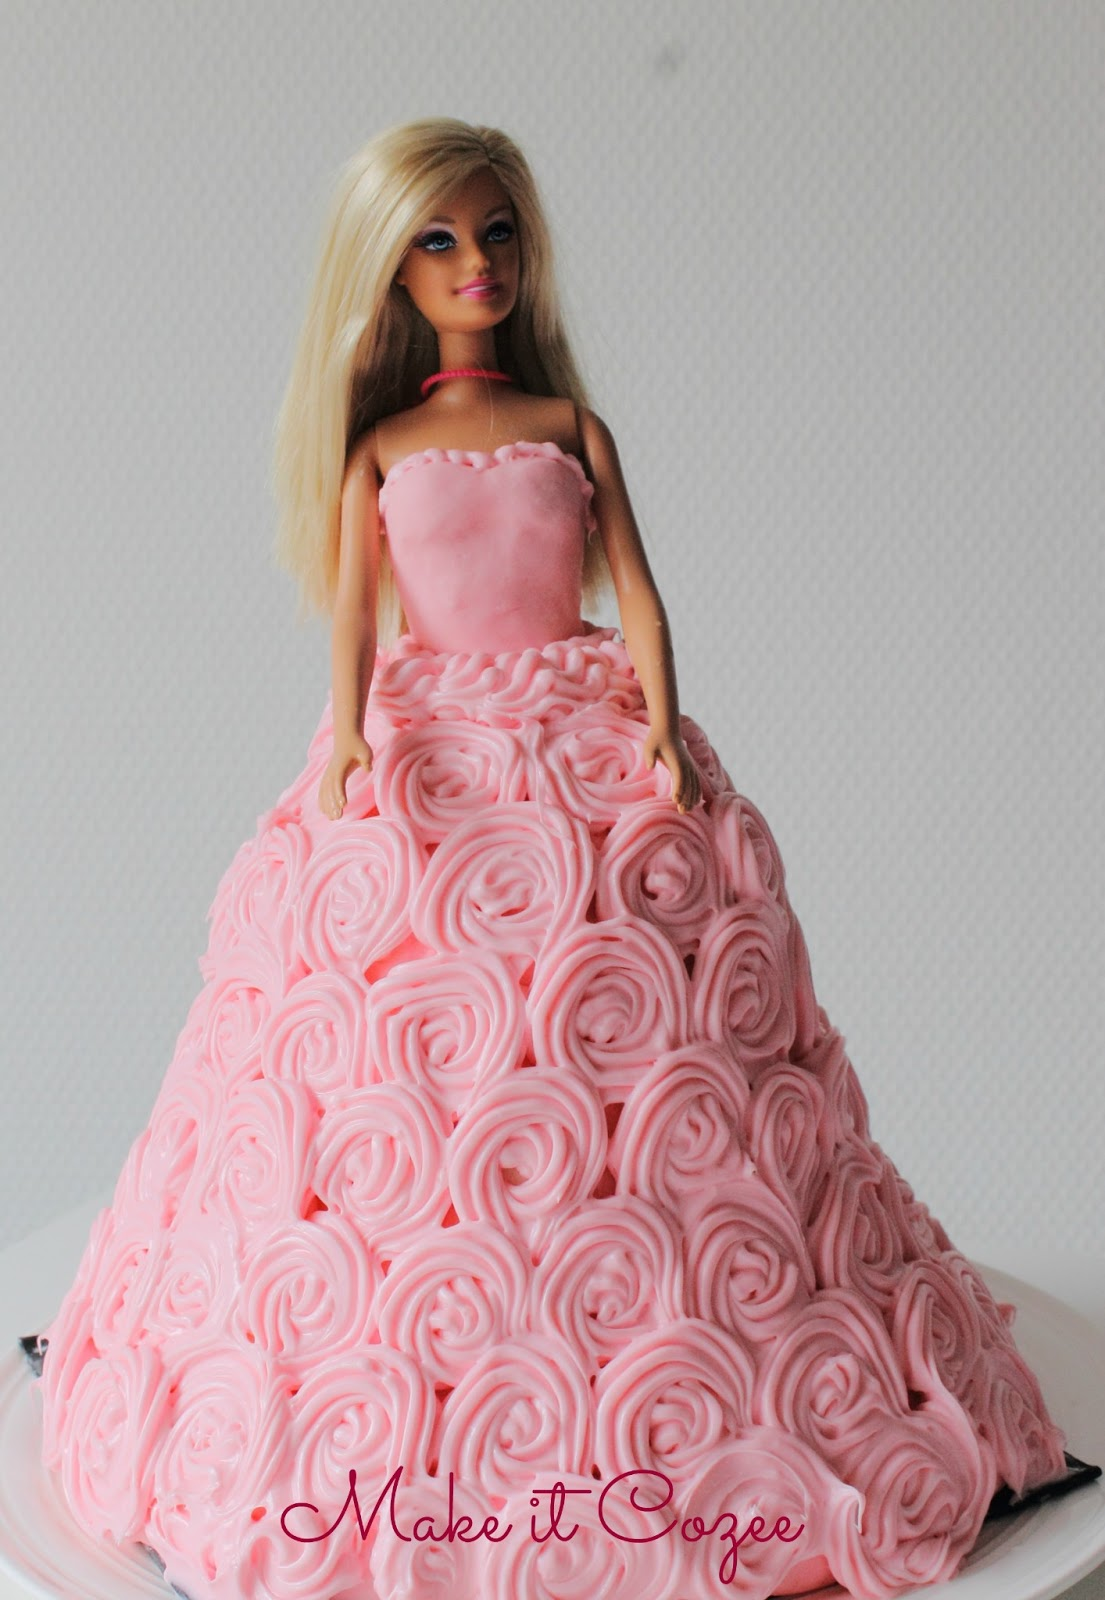 How To Make A Barbie Doll Cake With Fondant